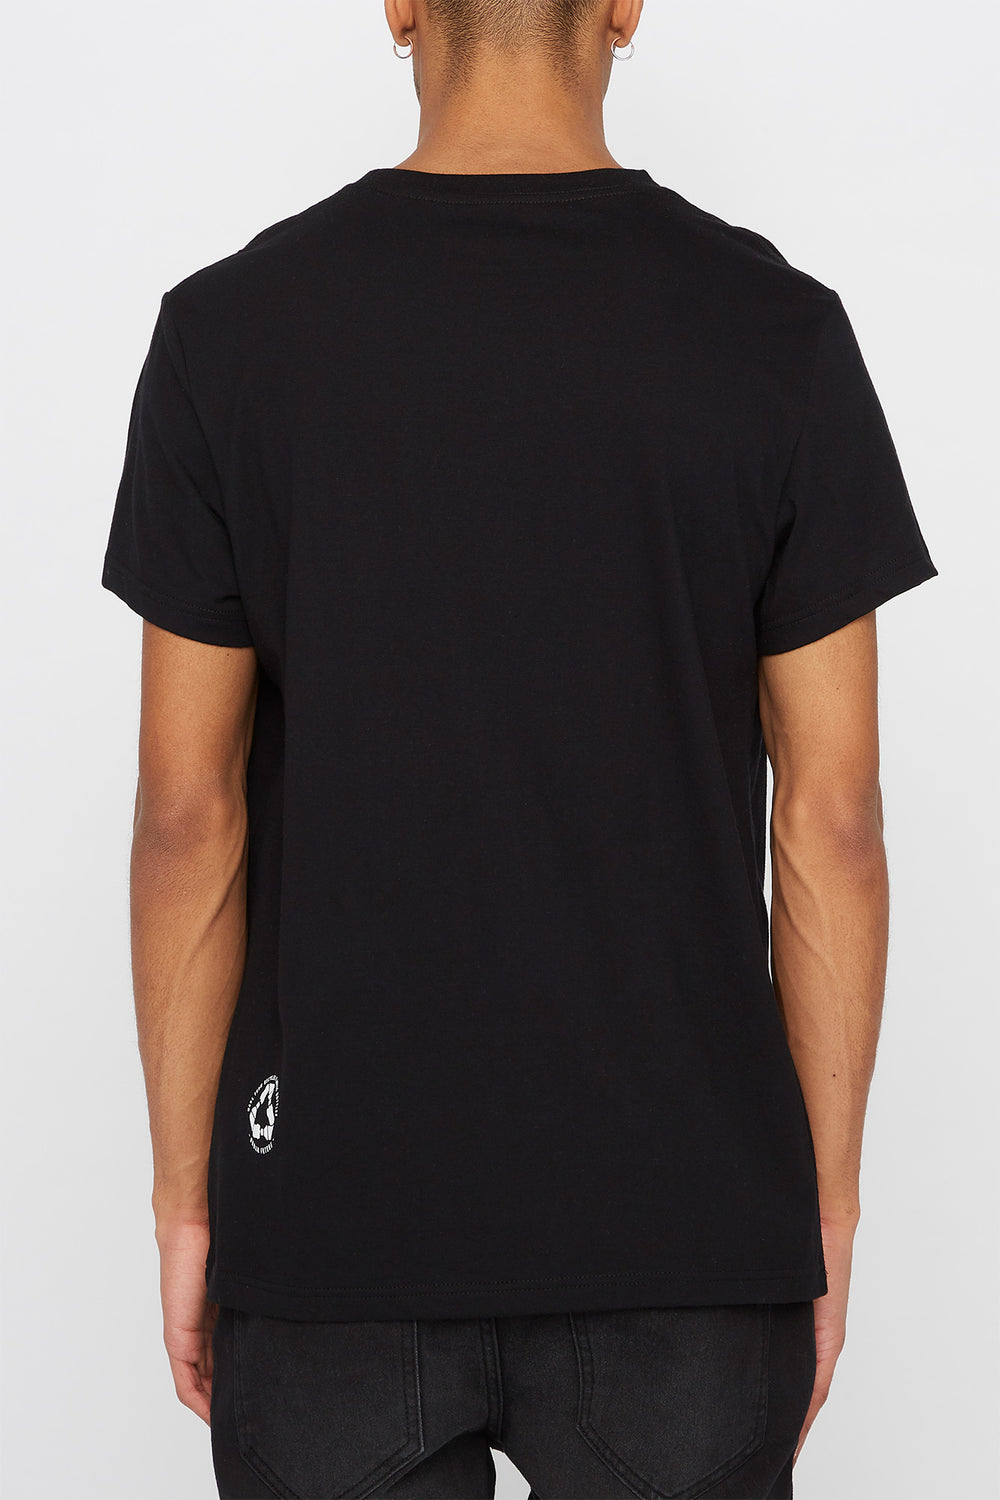 REPREVE® Mens Eco-Friendly T-Shirt Black